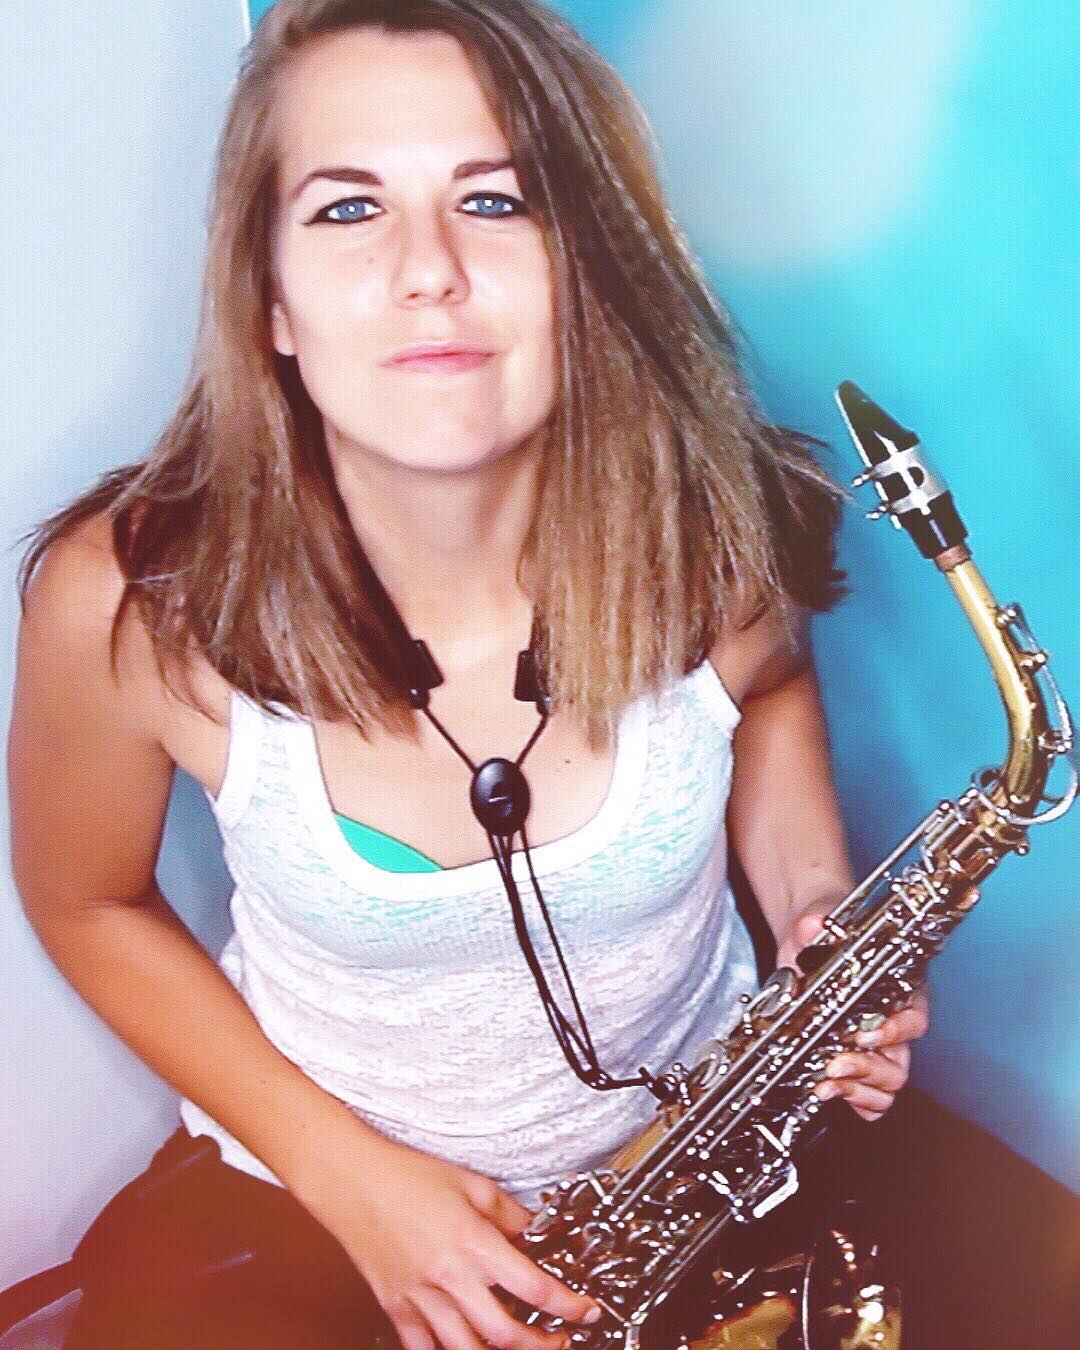 IT'S HERE!!! My big music video featuring freaking SAX. (Link to watch is in my bio!)